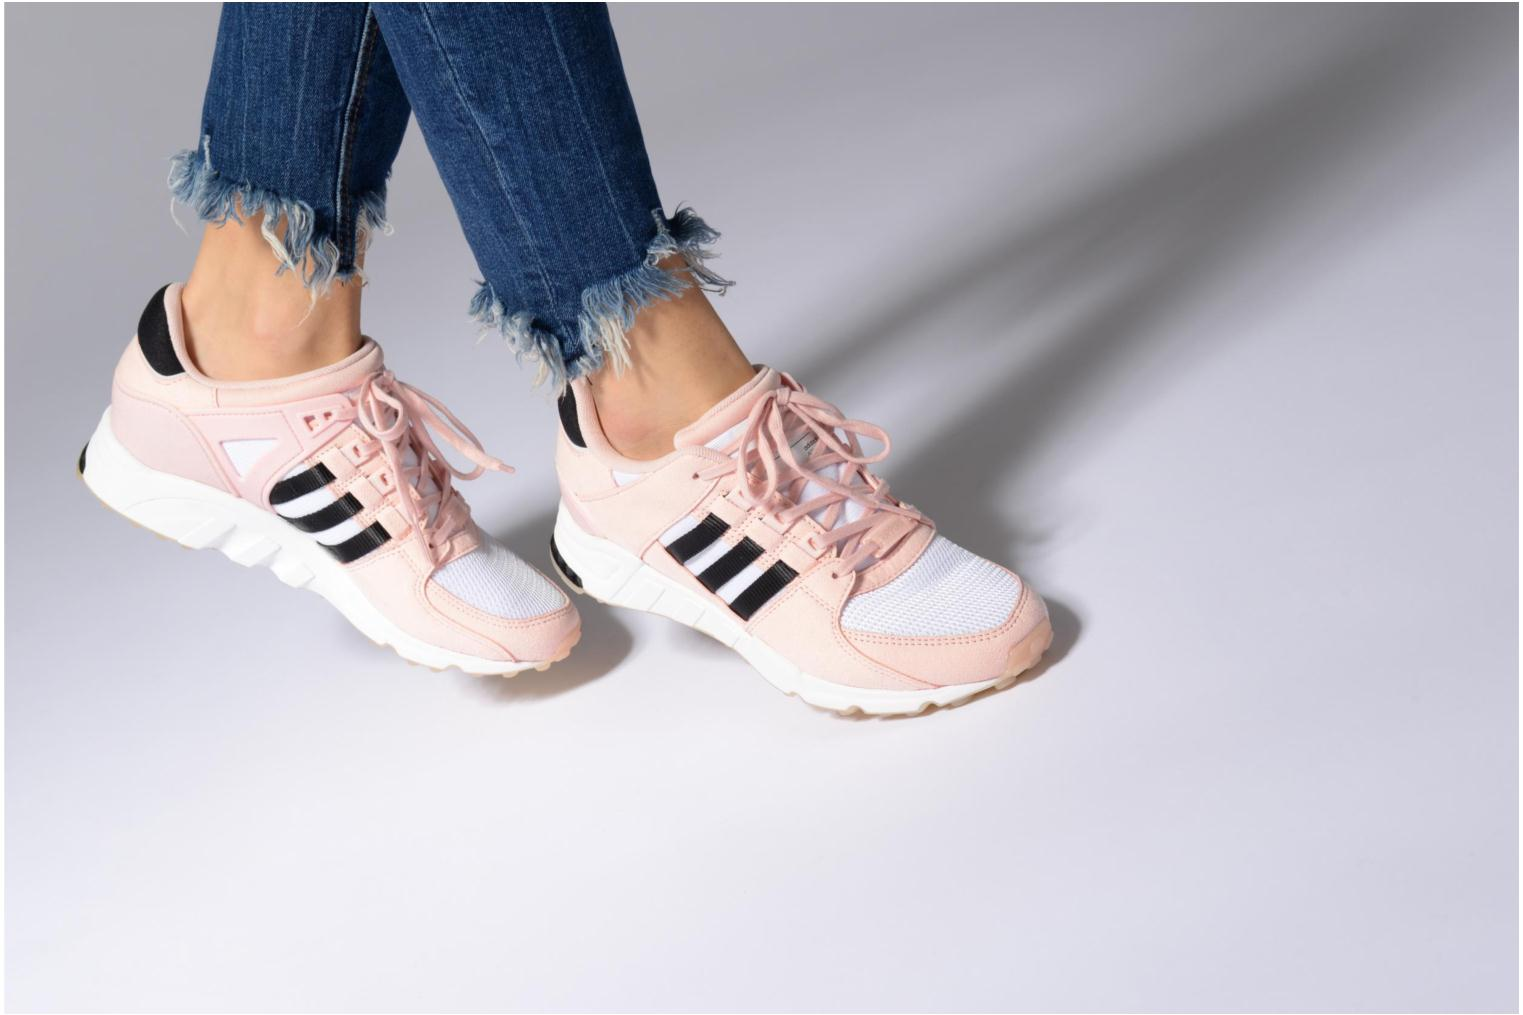 Maugla/Ftwbla/Turbo Adidas Originals Eqt Support Rf W (Rose)